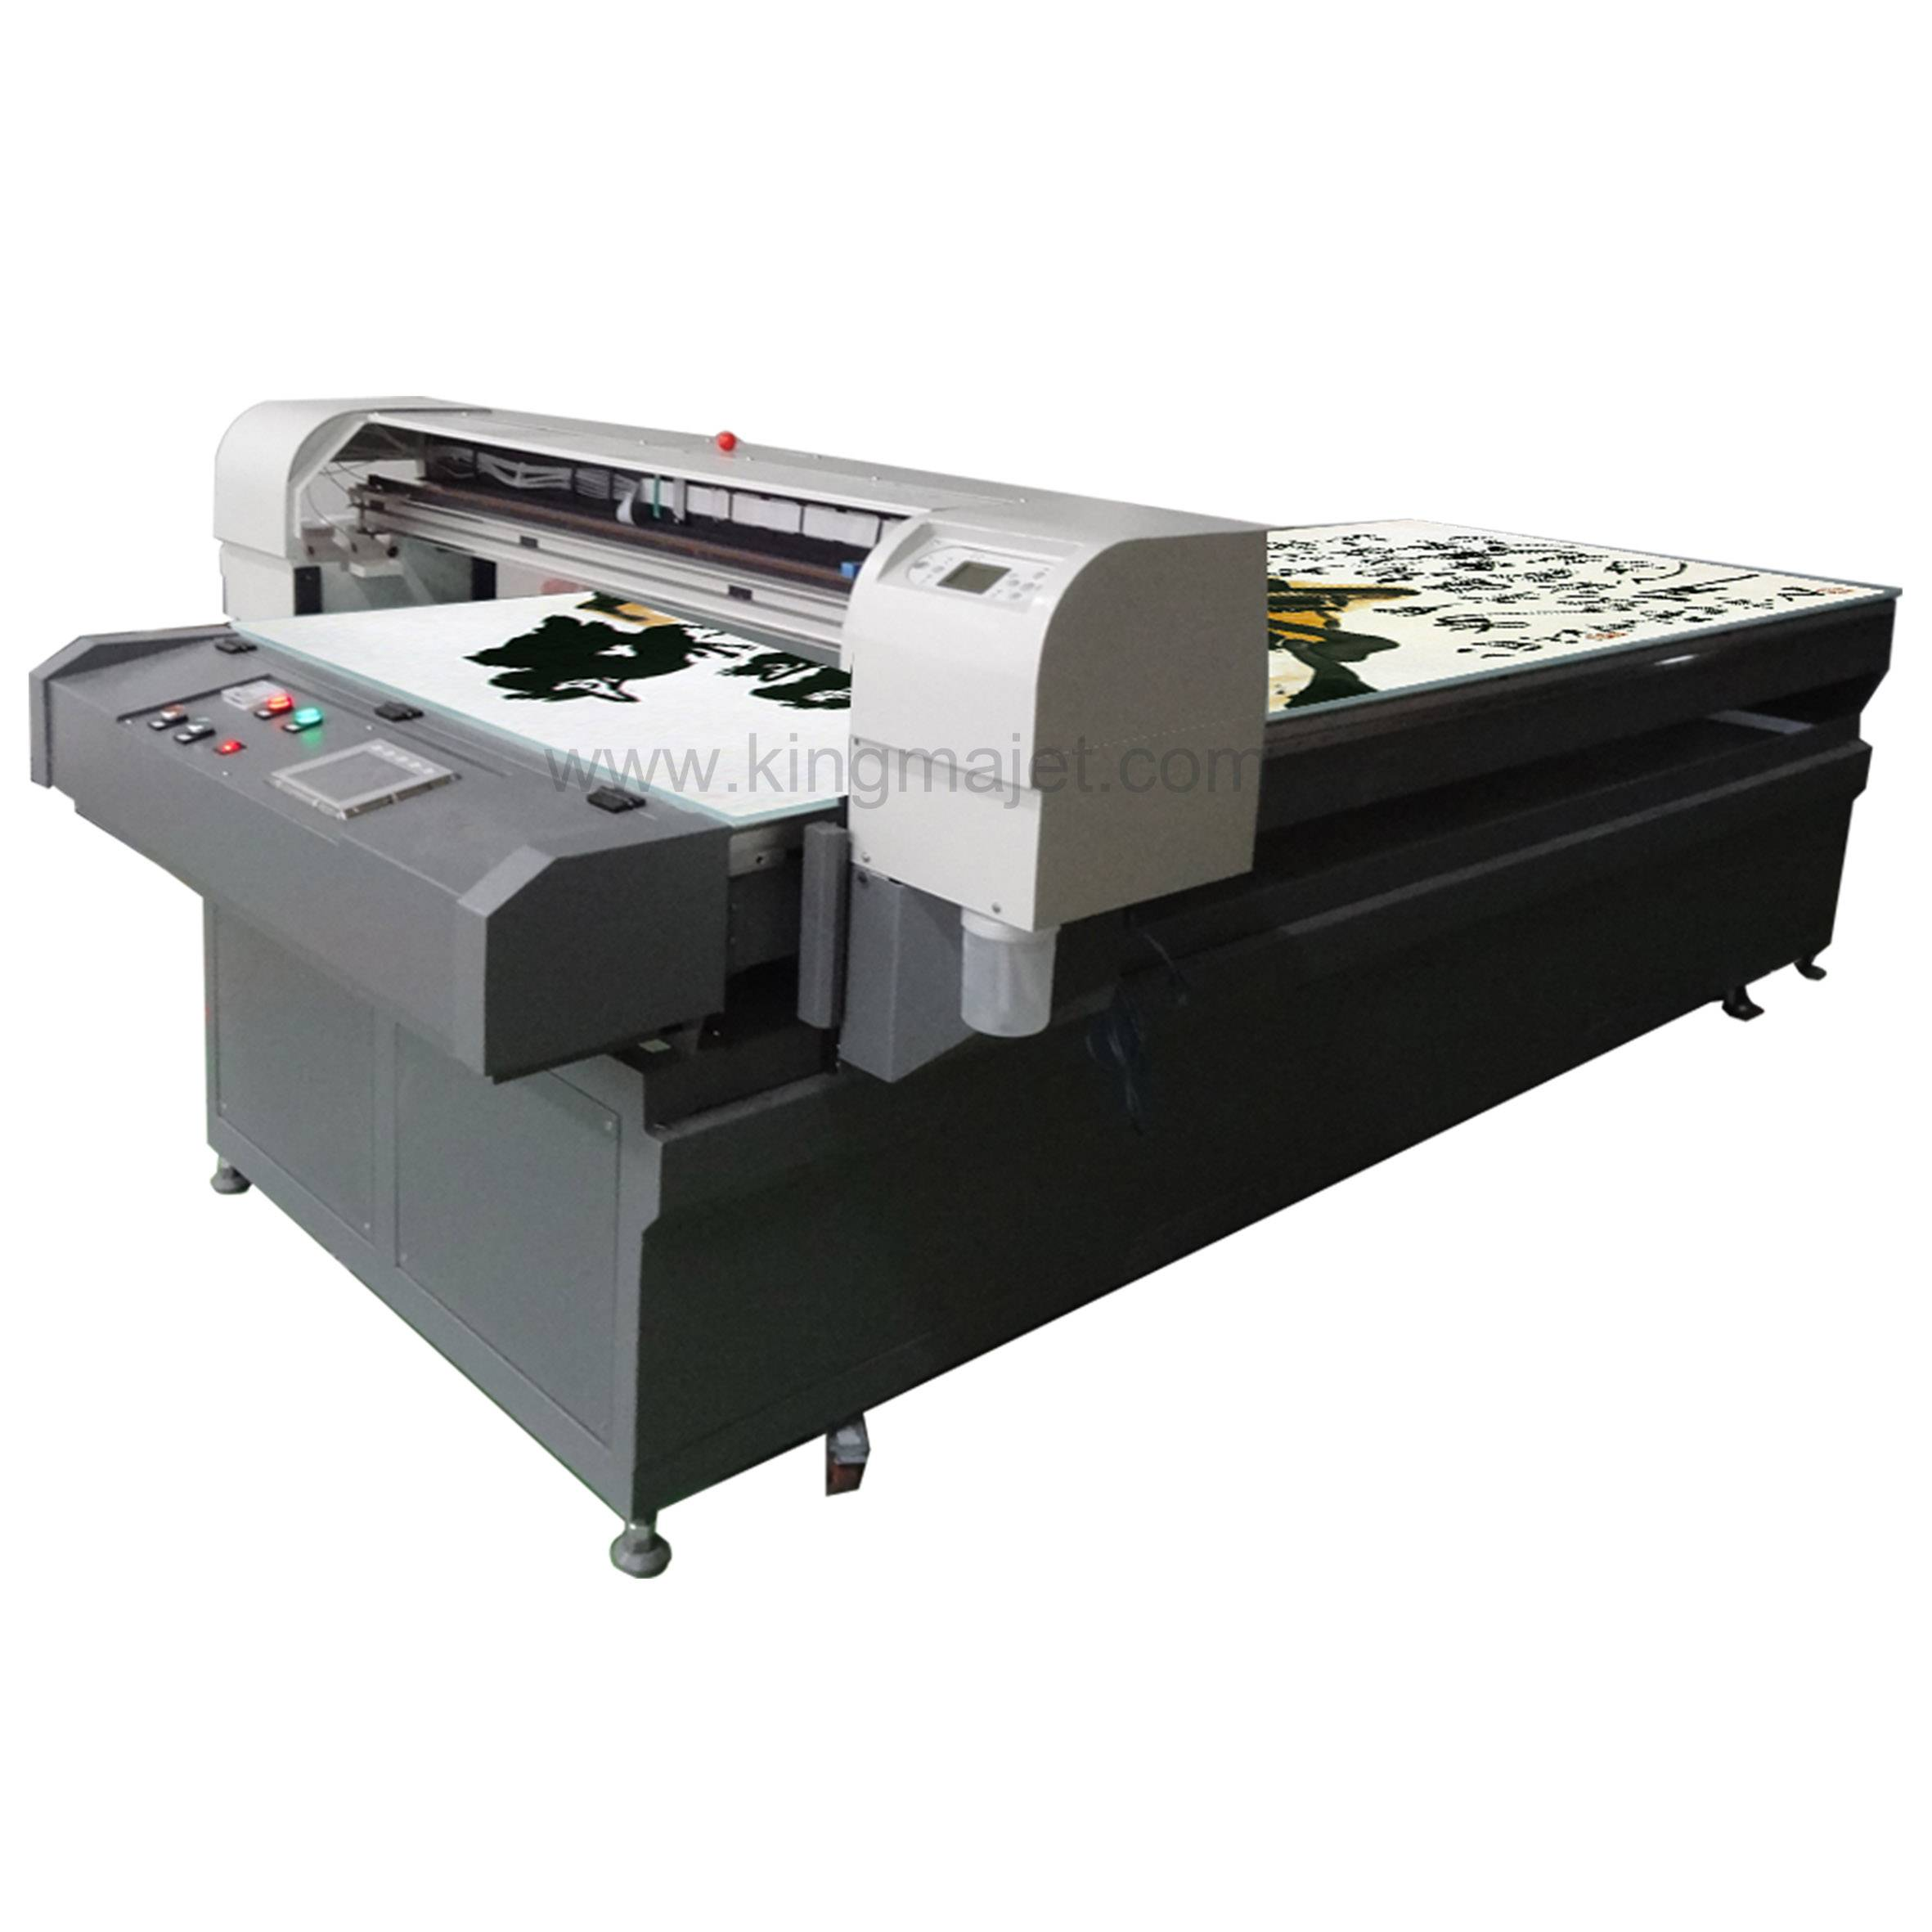 Weihang MJ1125-8 color Inkjet Flatbed Printer for Gift Items